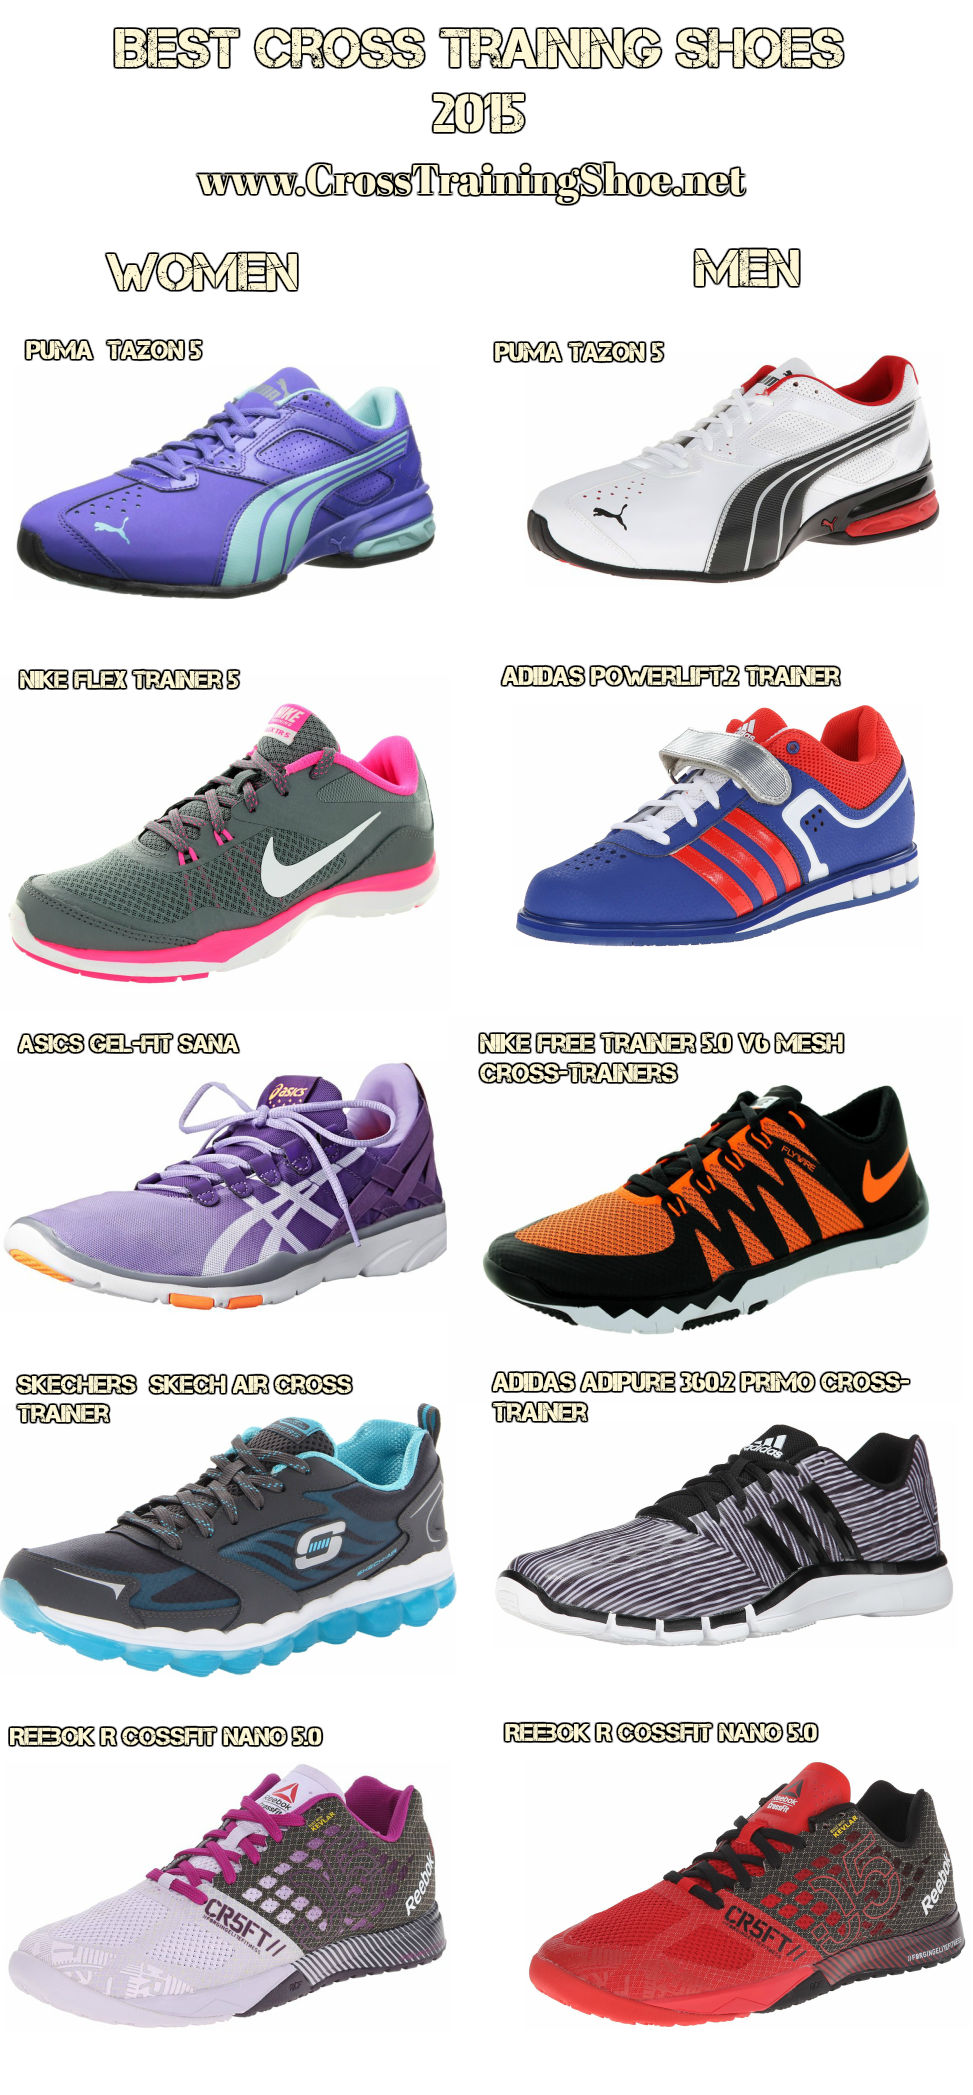 Best cross training (crossfit) shoes for men and women in 2015 ... 6ab214e55